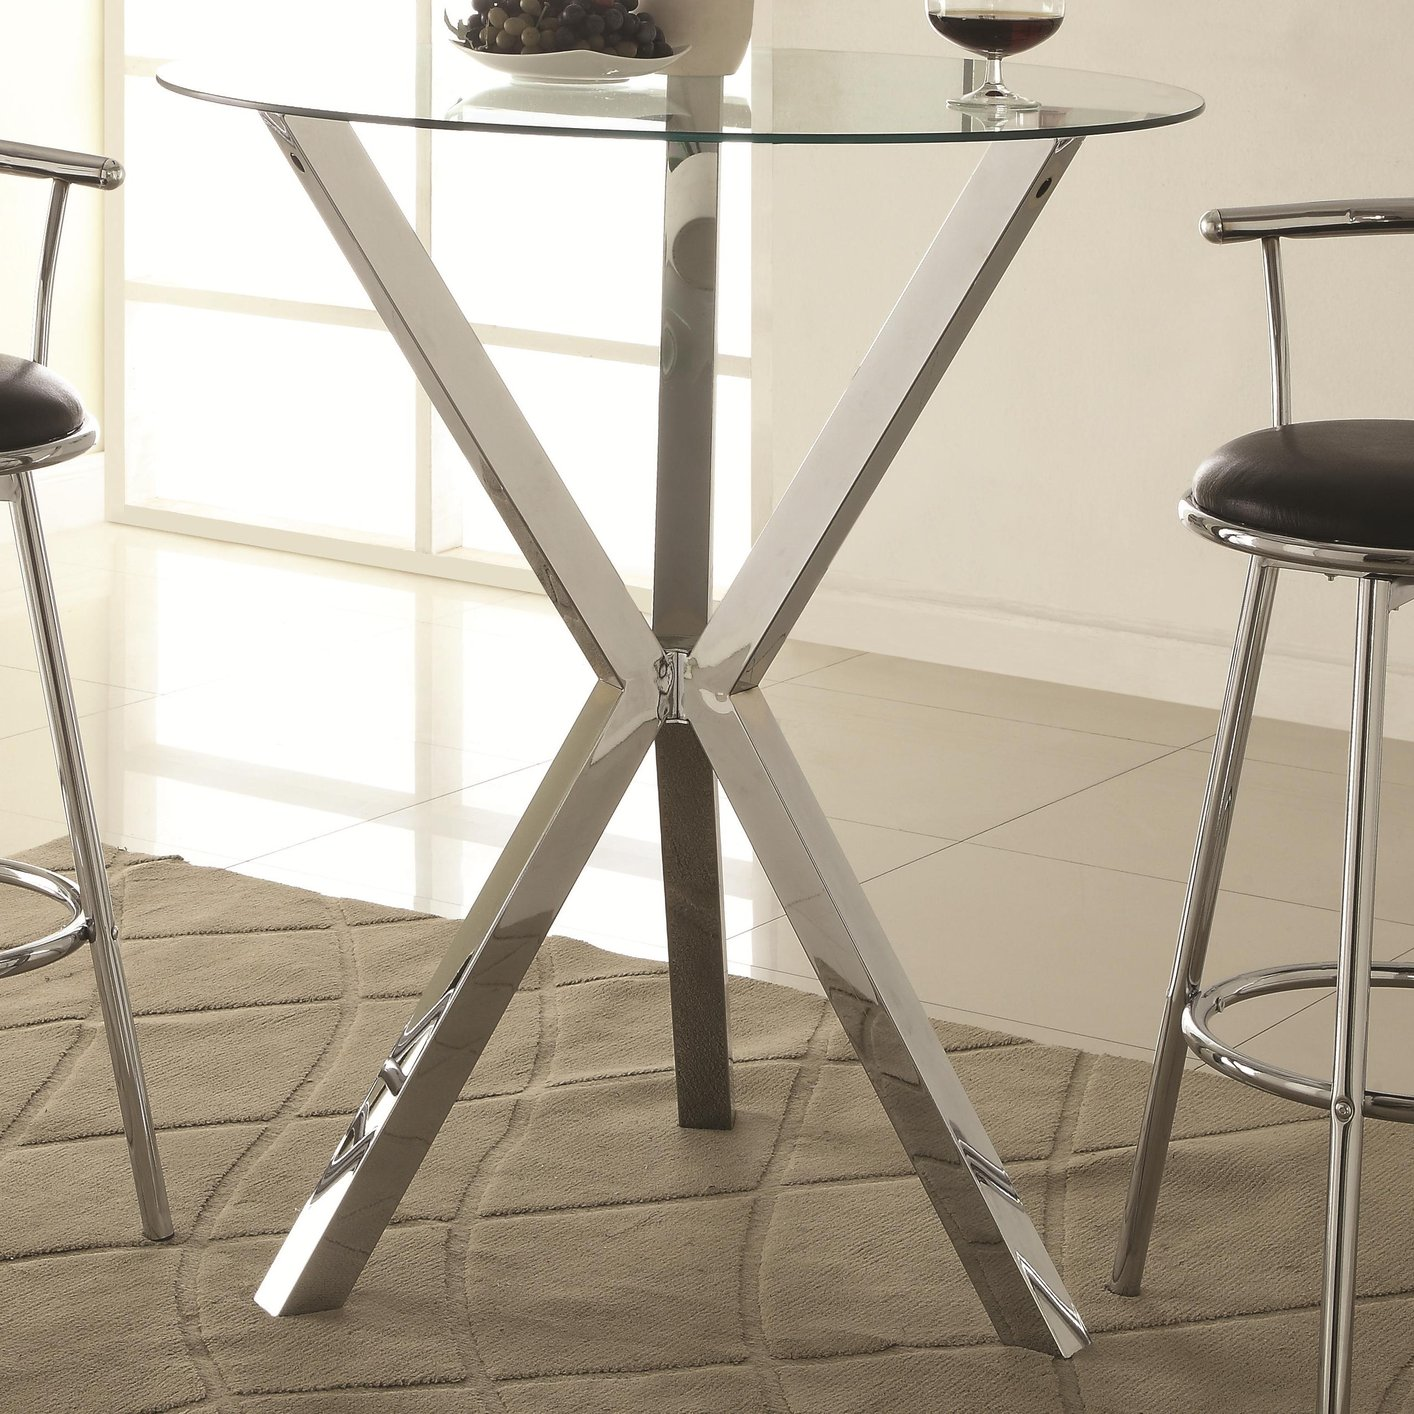 Coaster 100186 Silver Glass Bar Table Steal A Sofa Furniture Outlet Los Angeles Ca